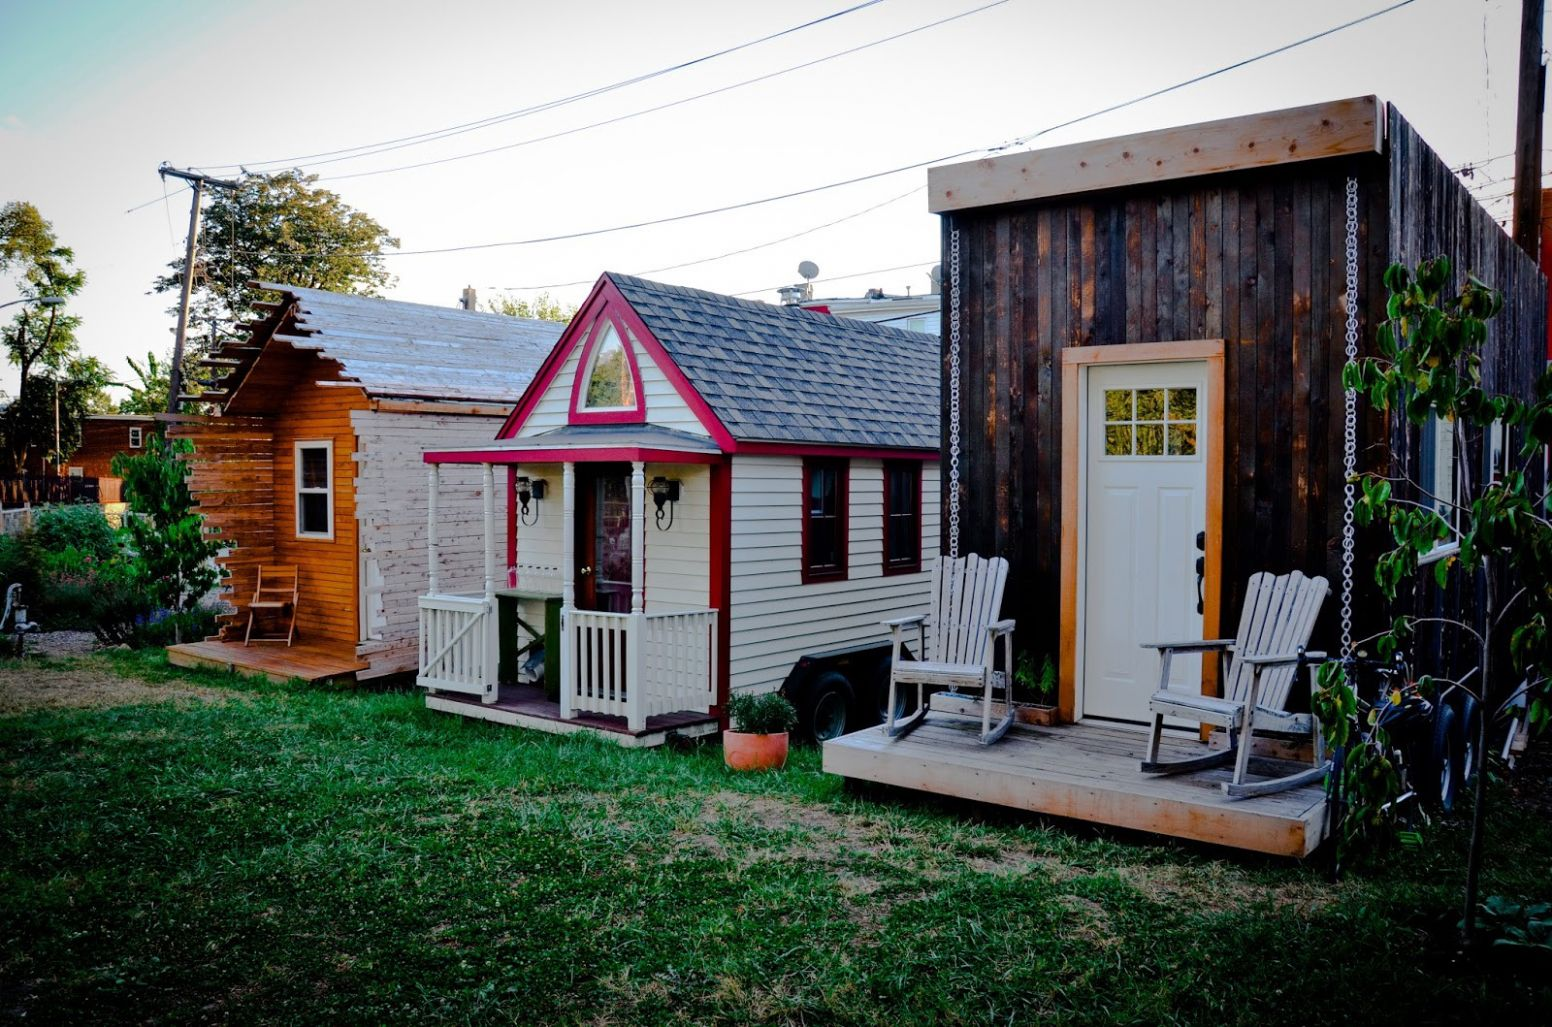 Jay Austin's Beautiful, Tiny House Also Illegal In Houston